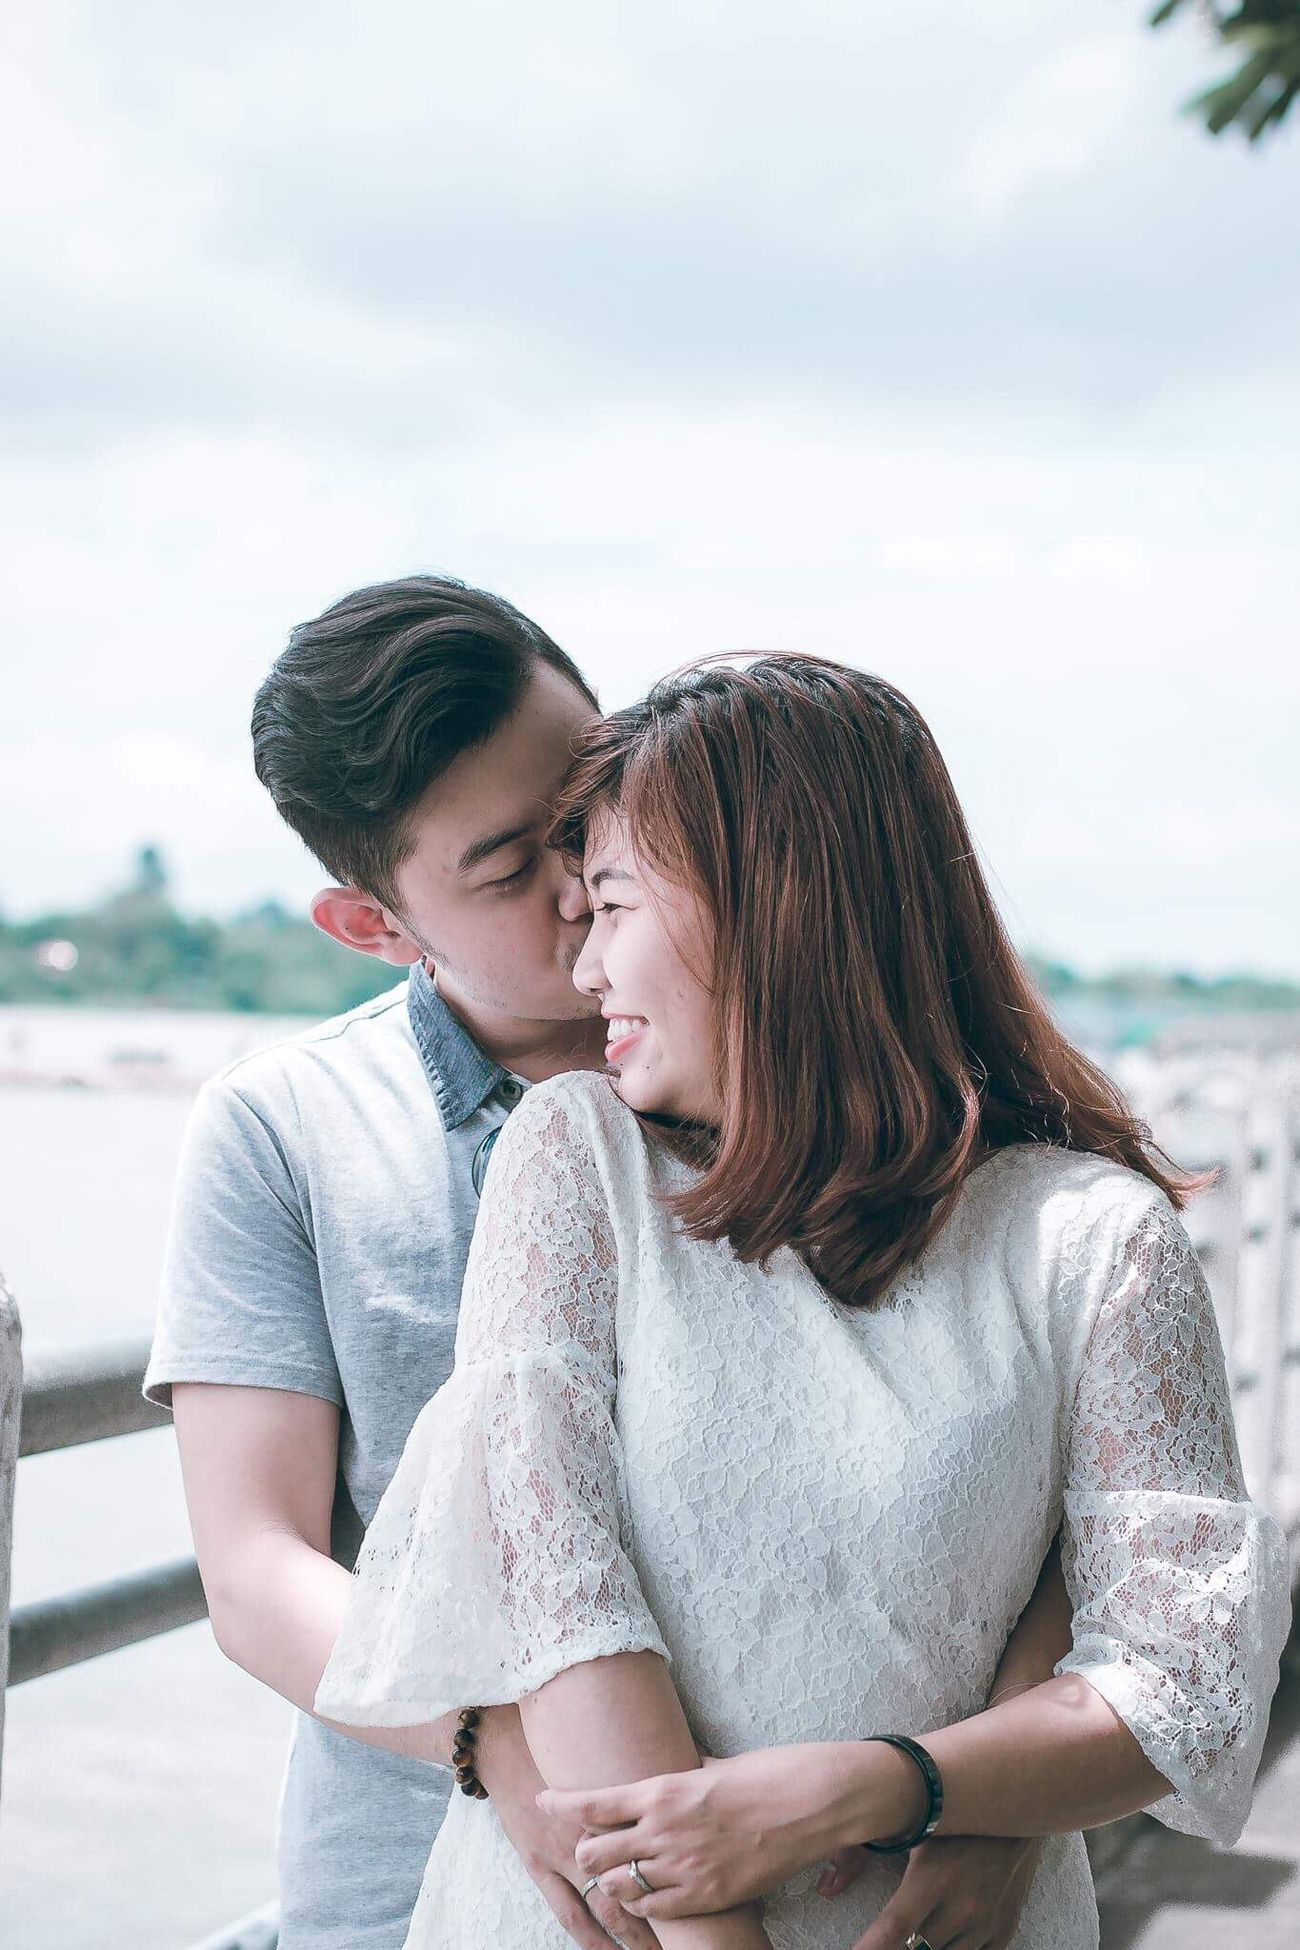 Eyeemnew Togetherness Love Romance Embracing Heterosexual Couple Young Women Bonding Young Adult Casual Clothing Couple - Relationship Happiness Day Women Adult Affectionate Smiling Adults Only Men Outdoors